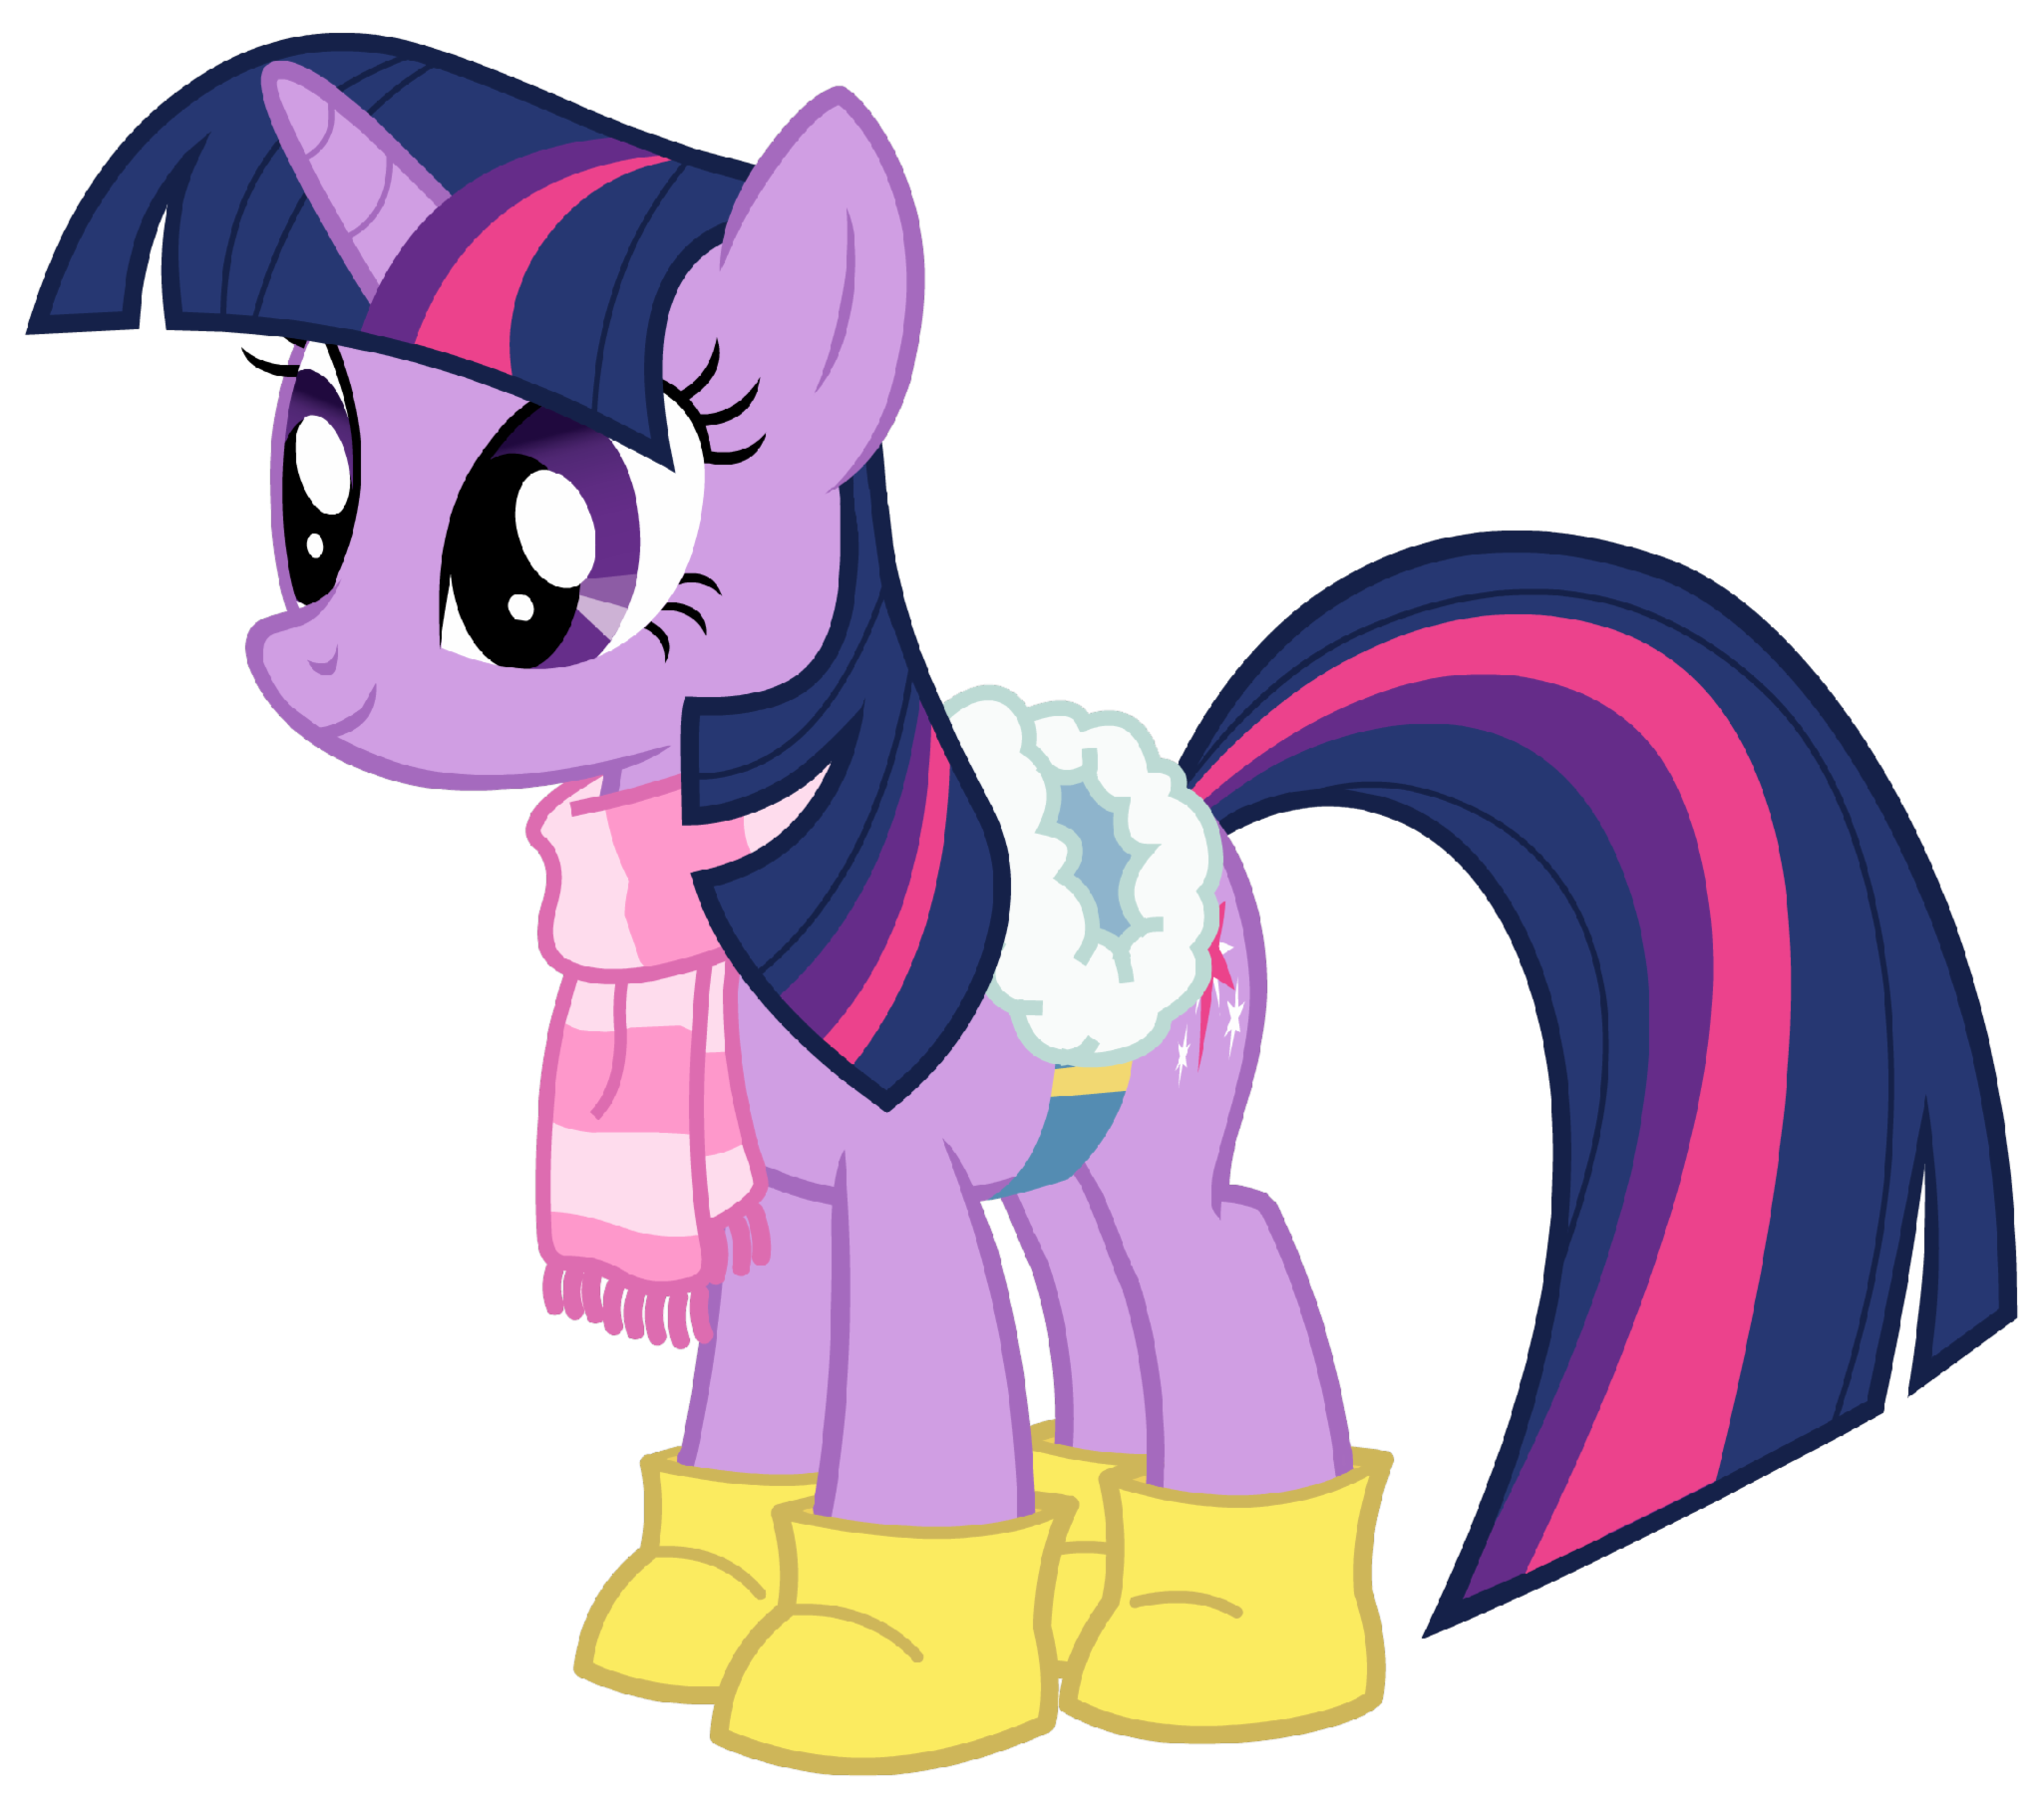 Twilight Sparkle's